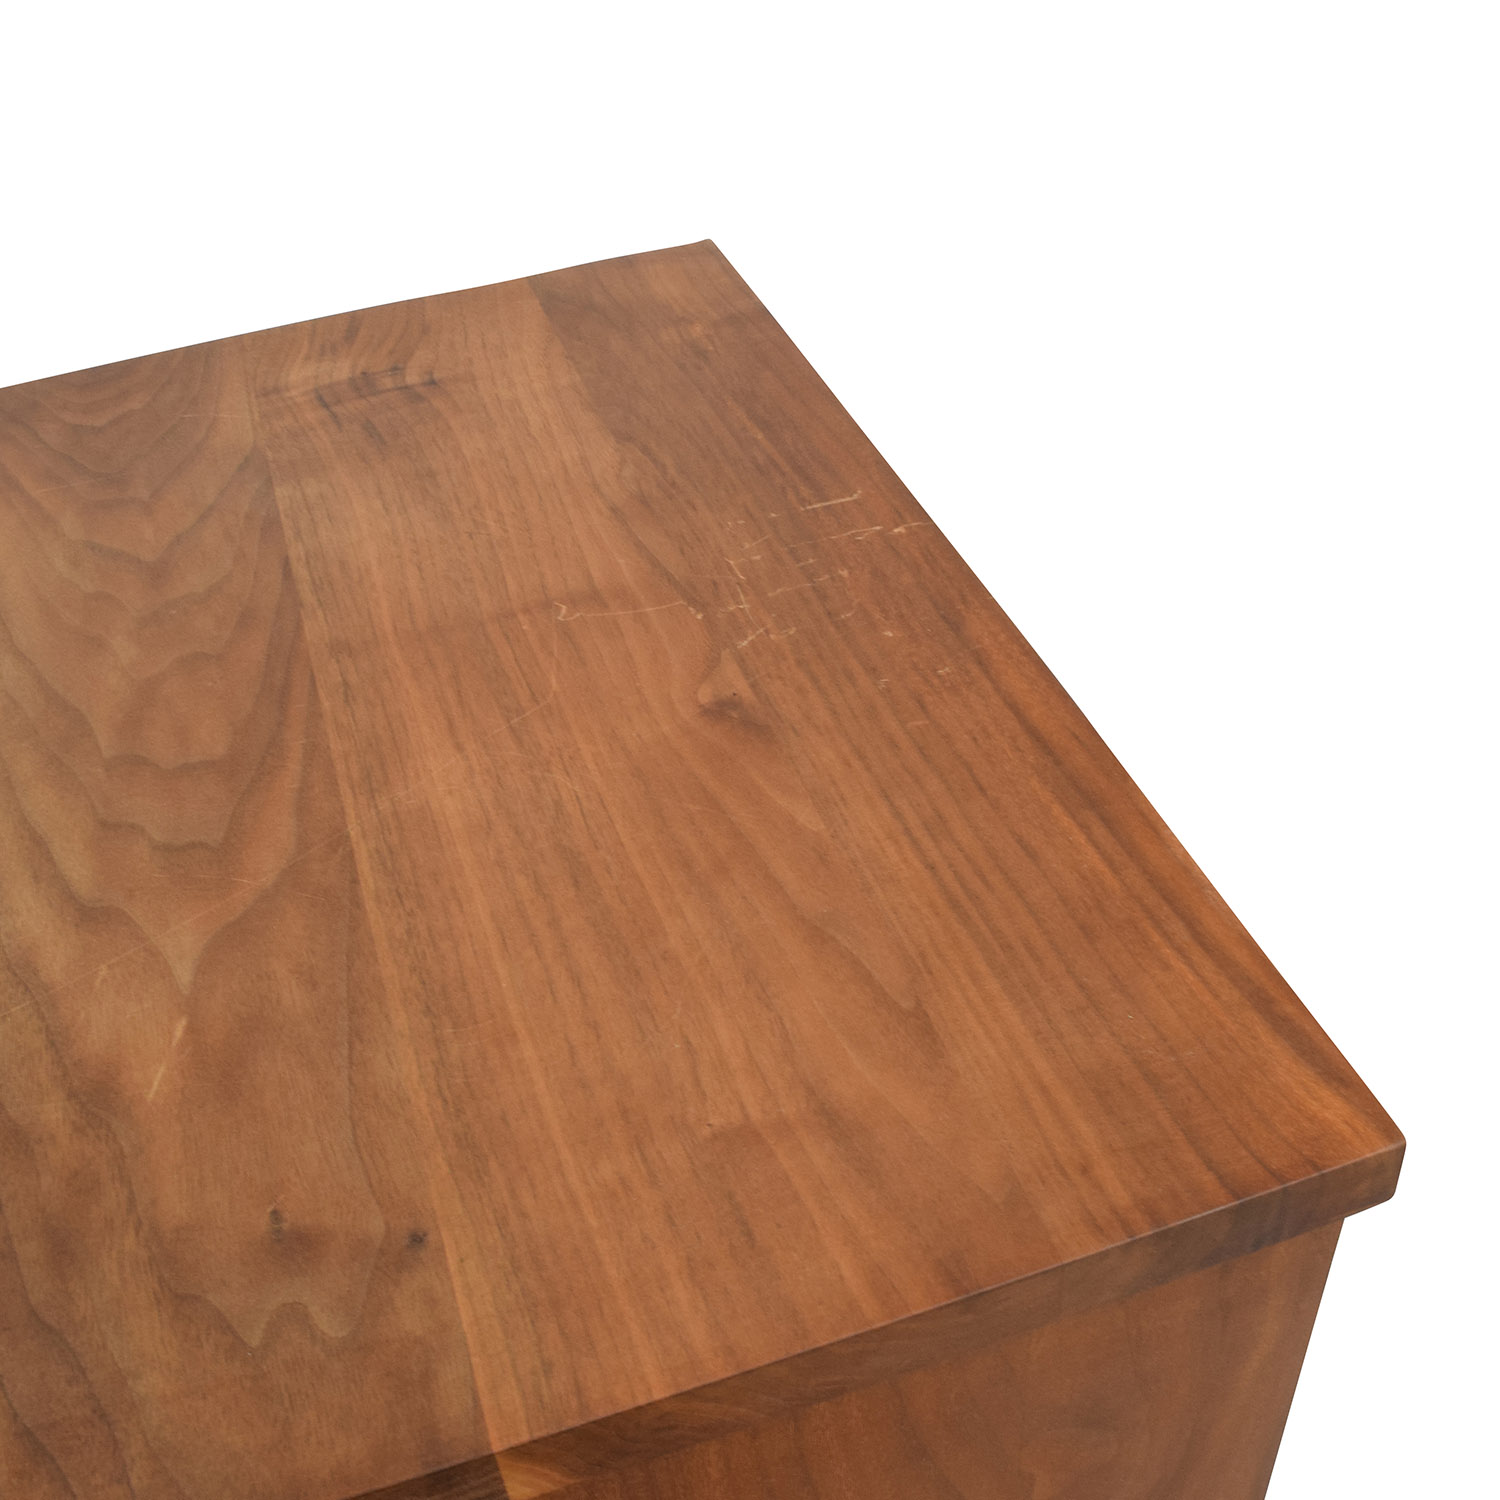 buy Crate and Barrel Crate and Barrel Tall Dresser or Shelf online